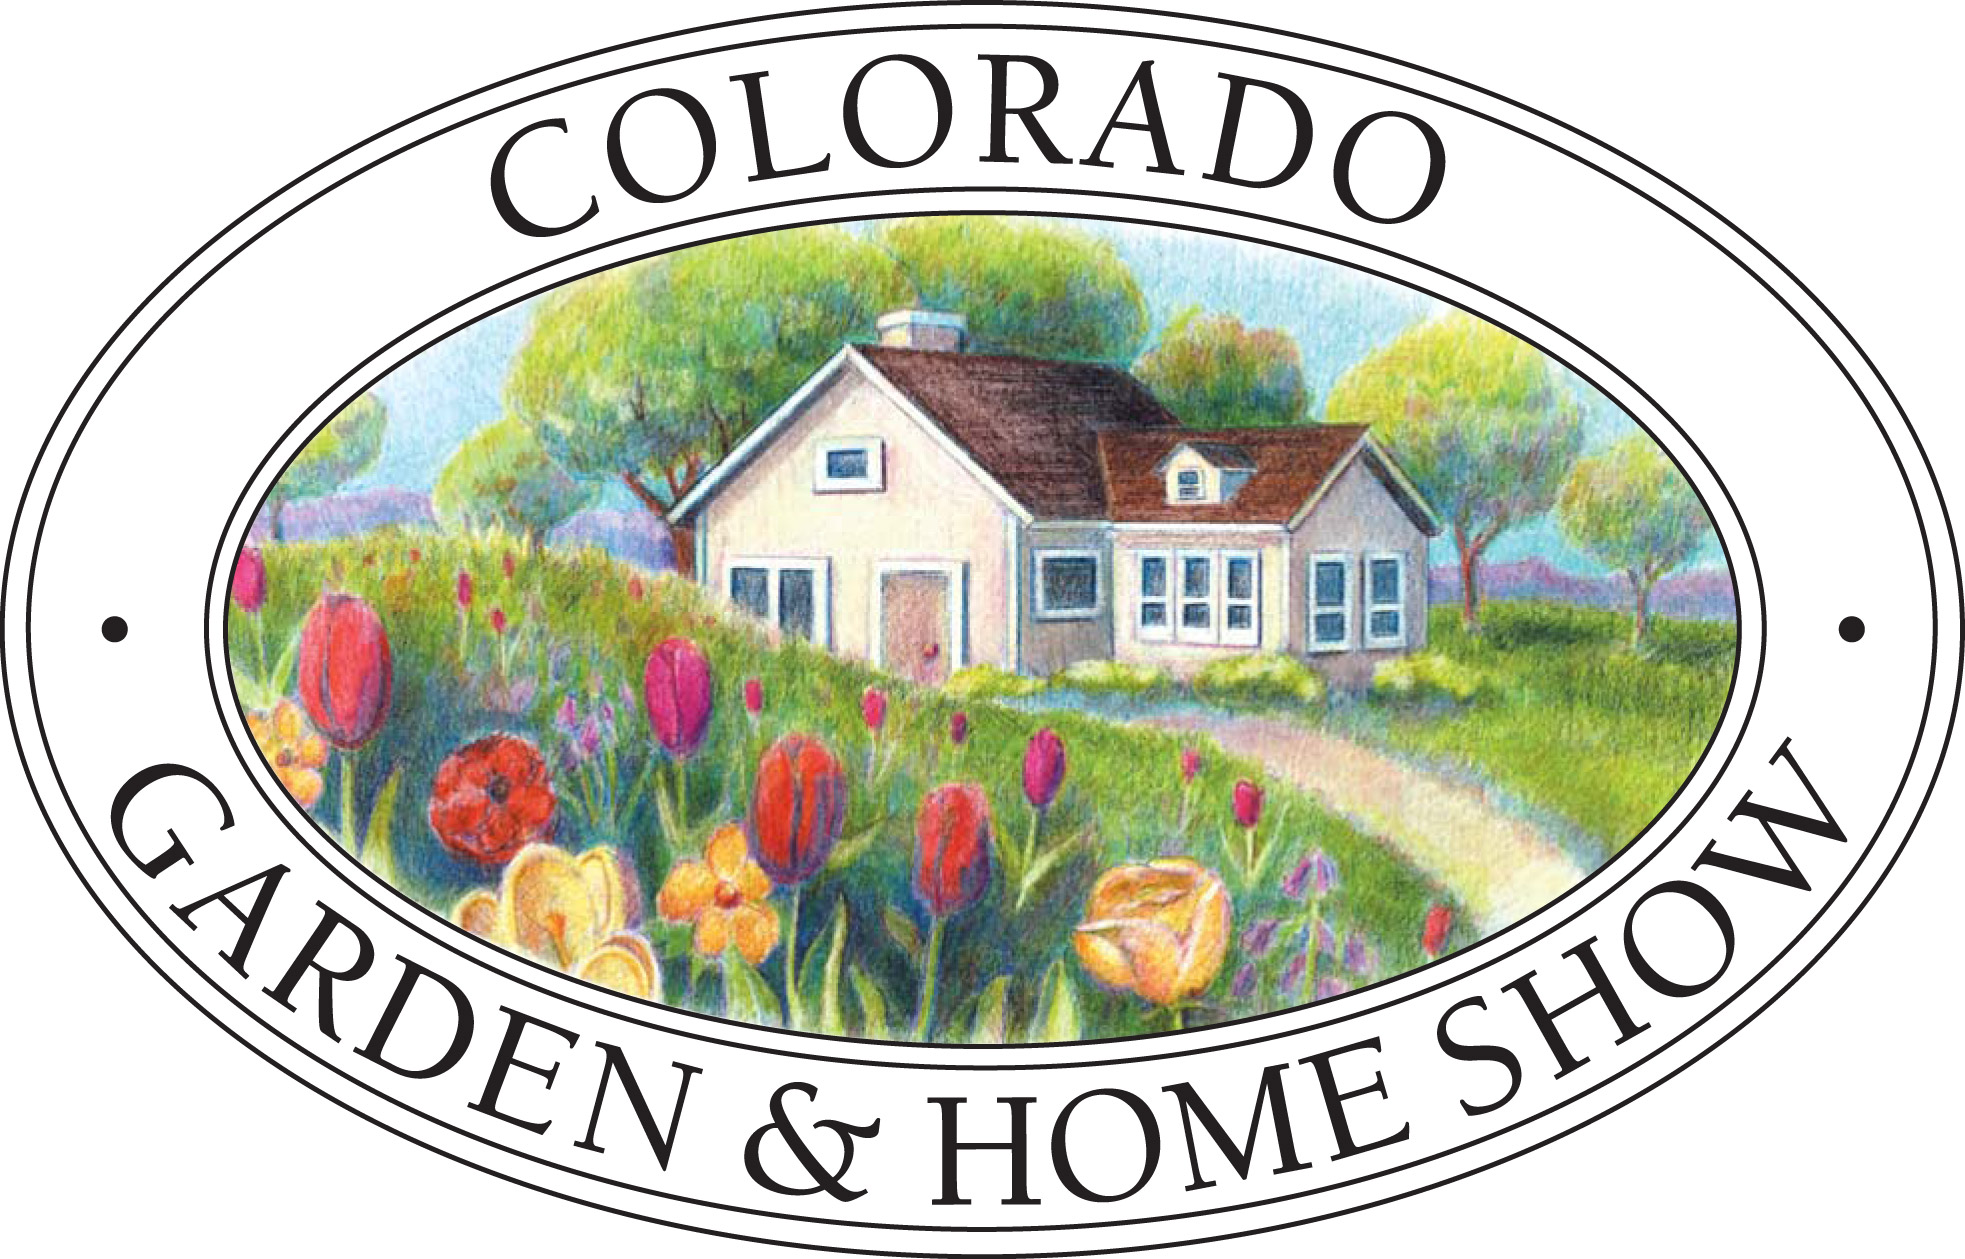 Colorado garden home show bkc kitchen bath Colorado home and garden show